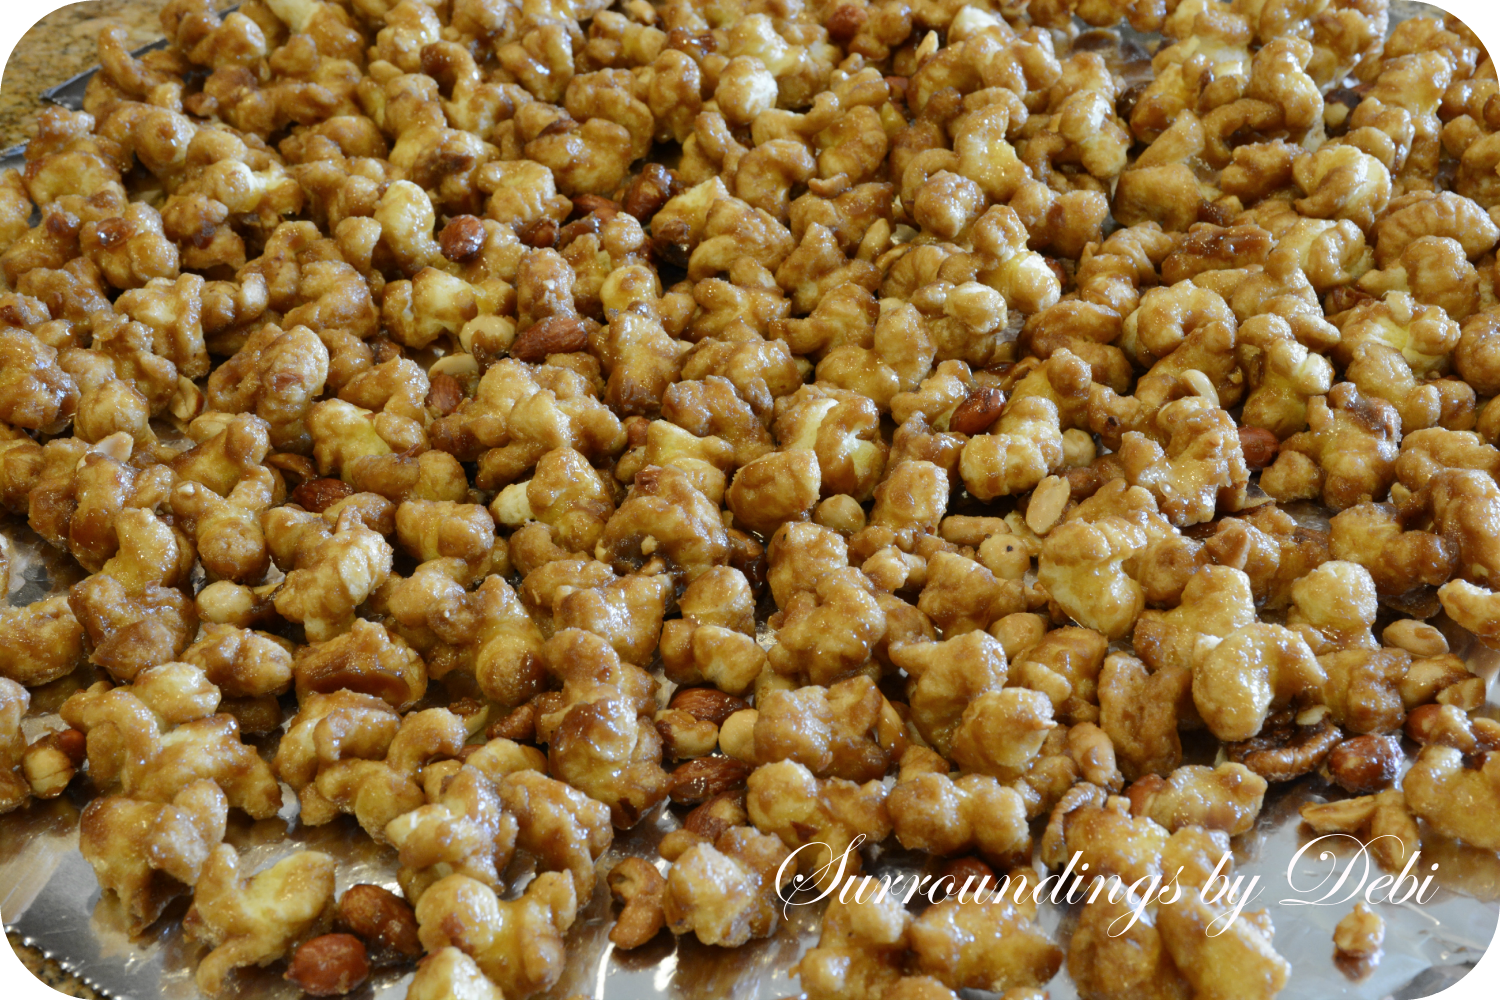 Filling containers with Caramel Puff Corn with Nuts would make a ...